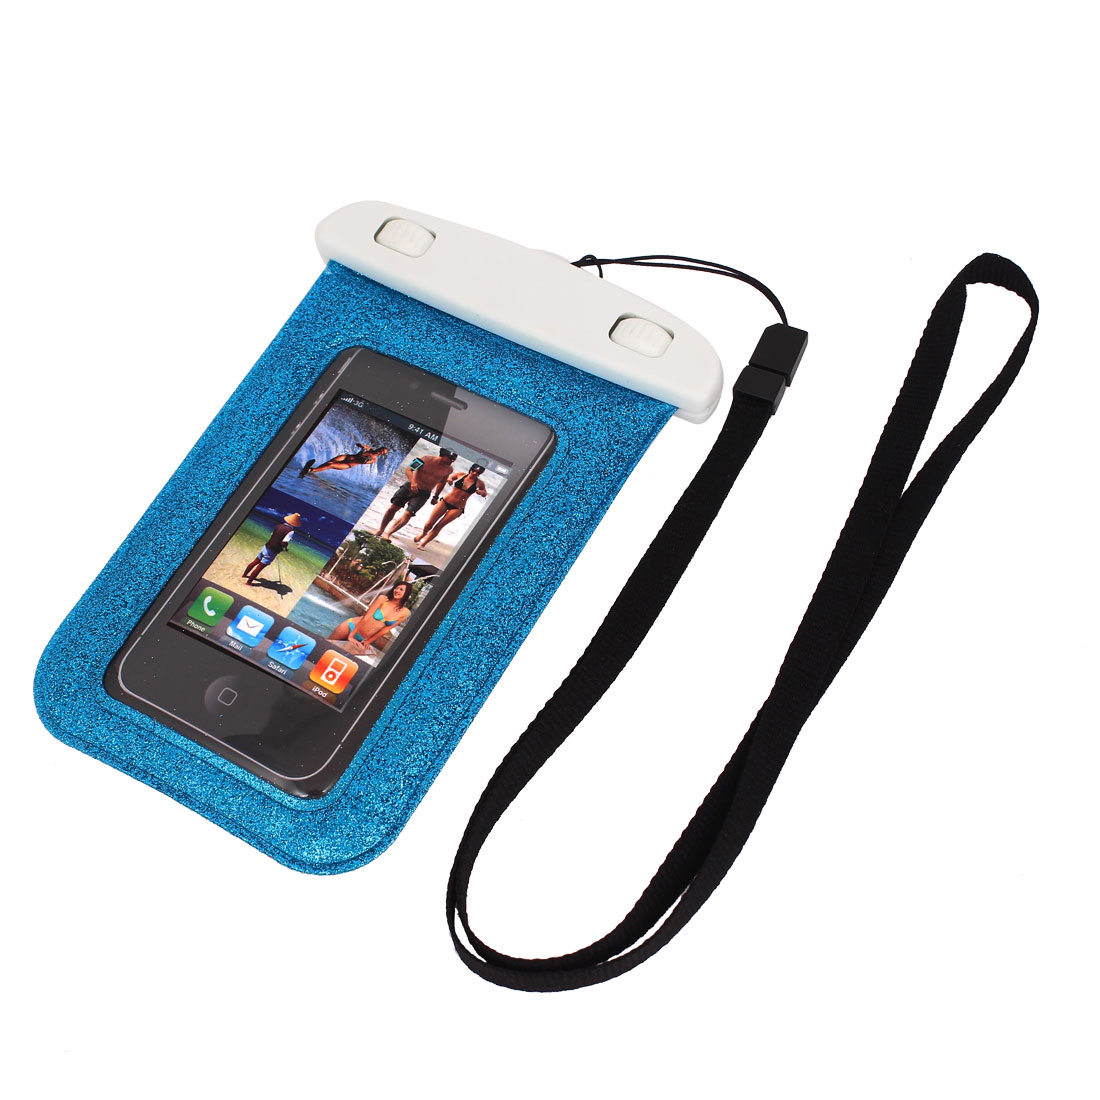 "Blink Waterproof Case Dry Bag Cover Protector Pouch Blue for 4"" Cell Phone"